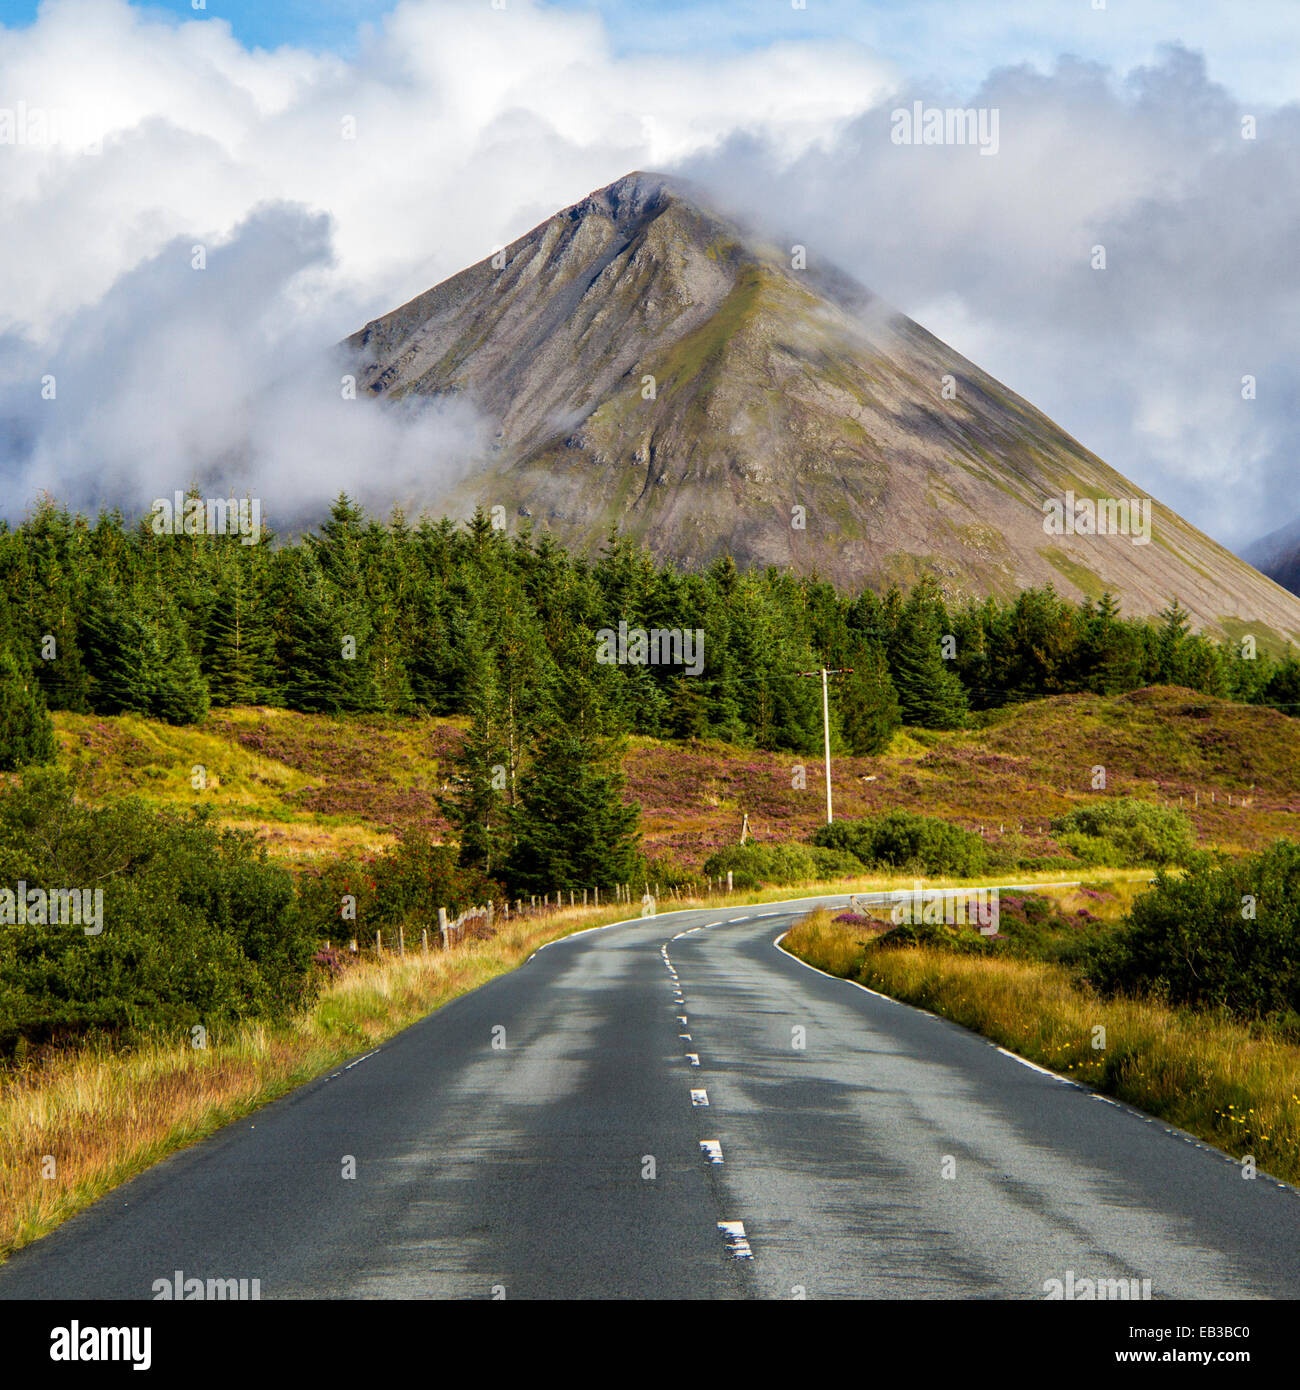 UK, Scotland, Isle of Skye Road among plain leading towards mountains - Stock Image